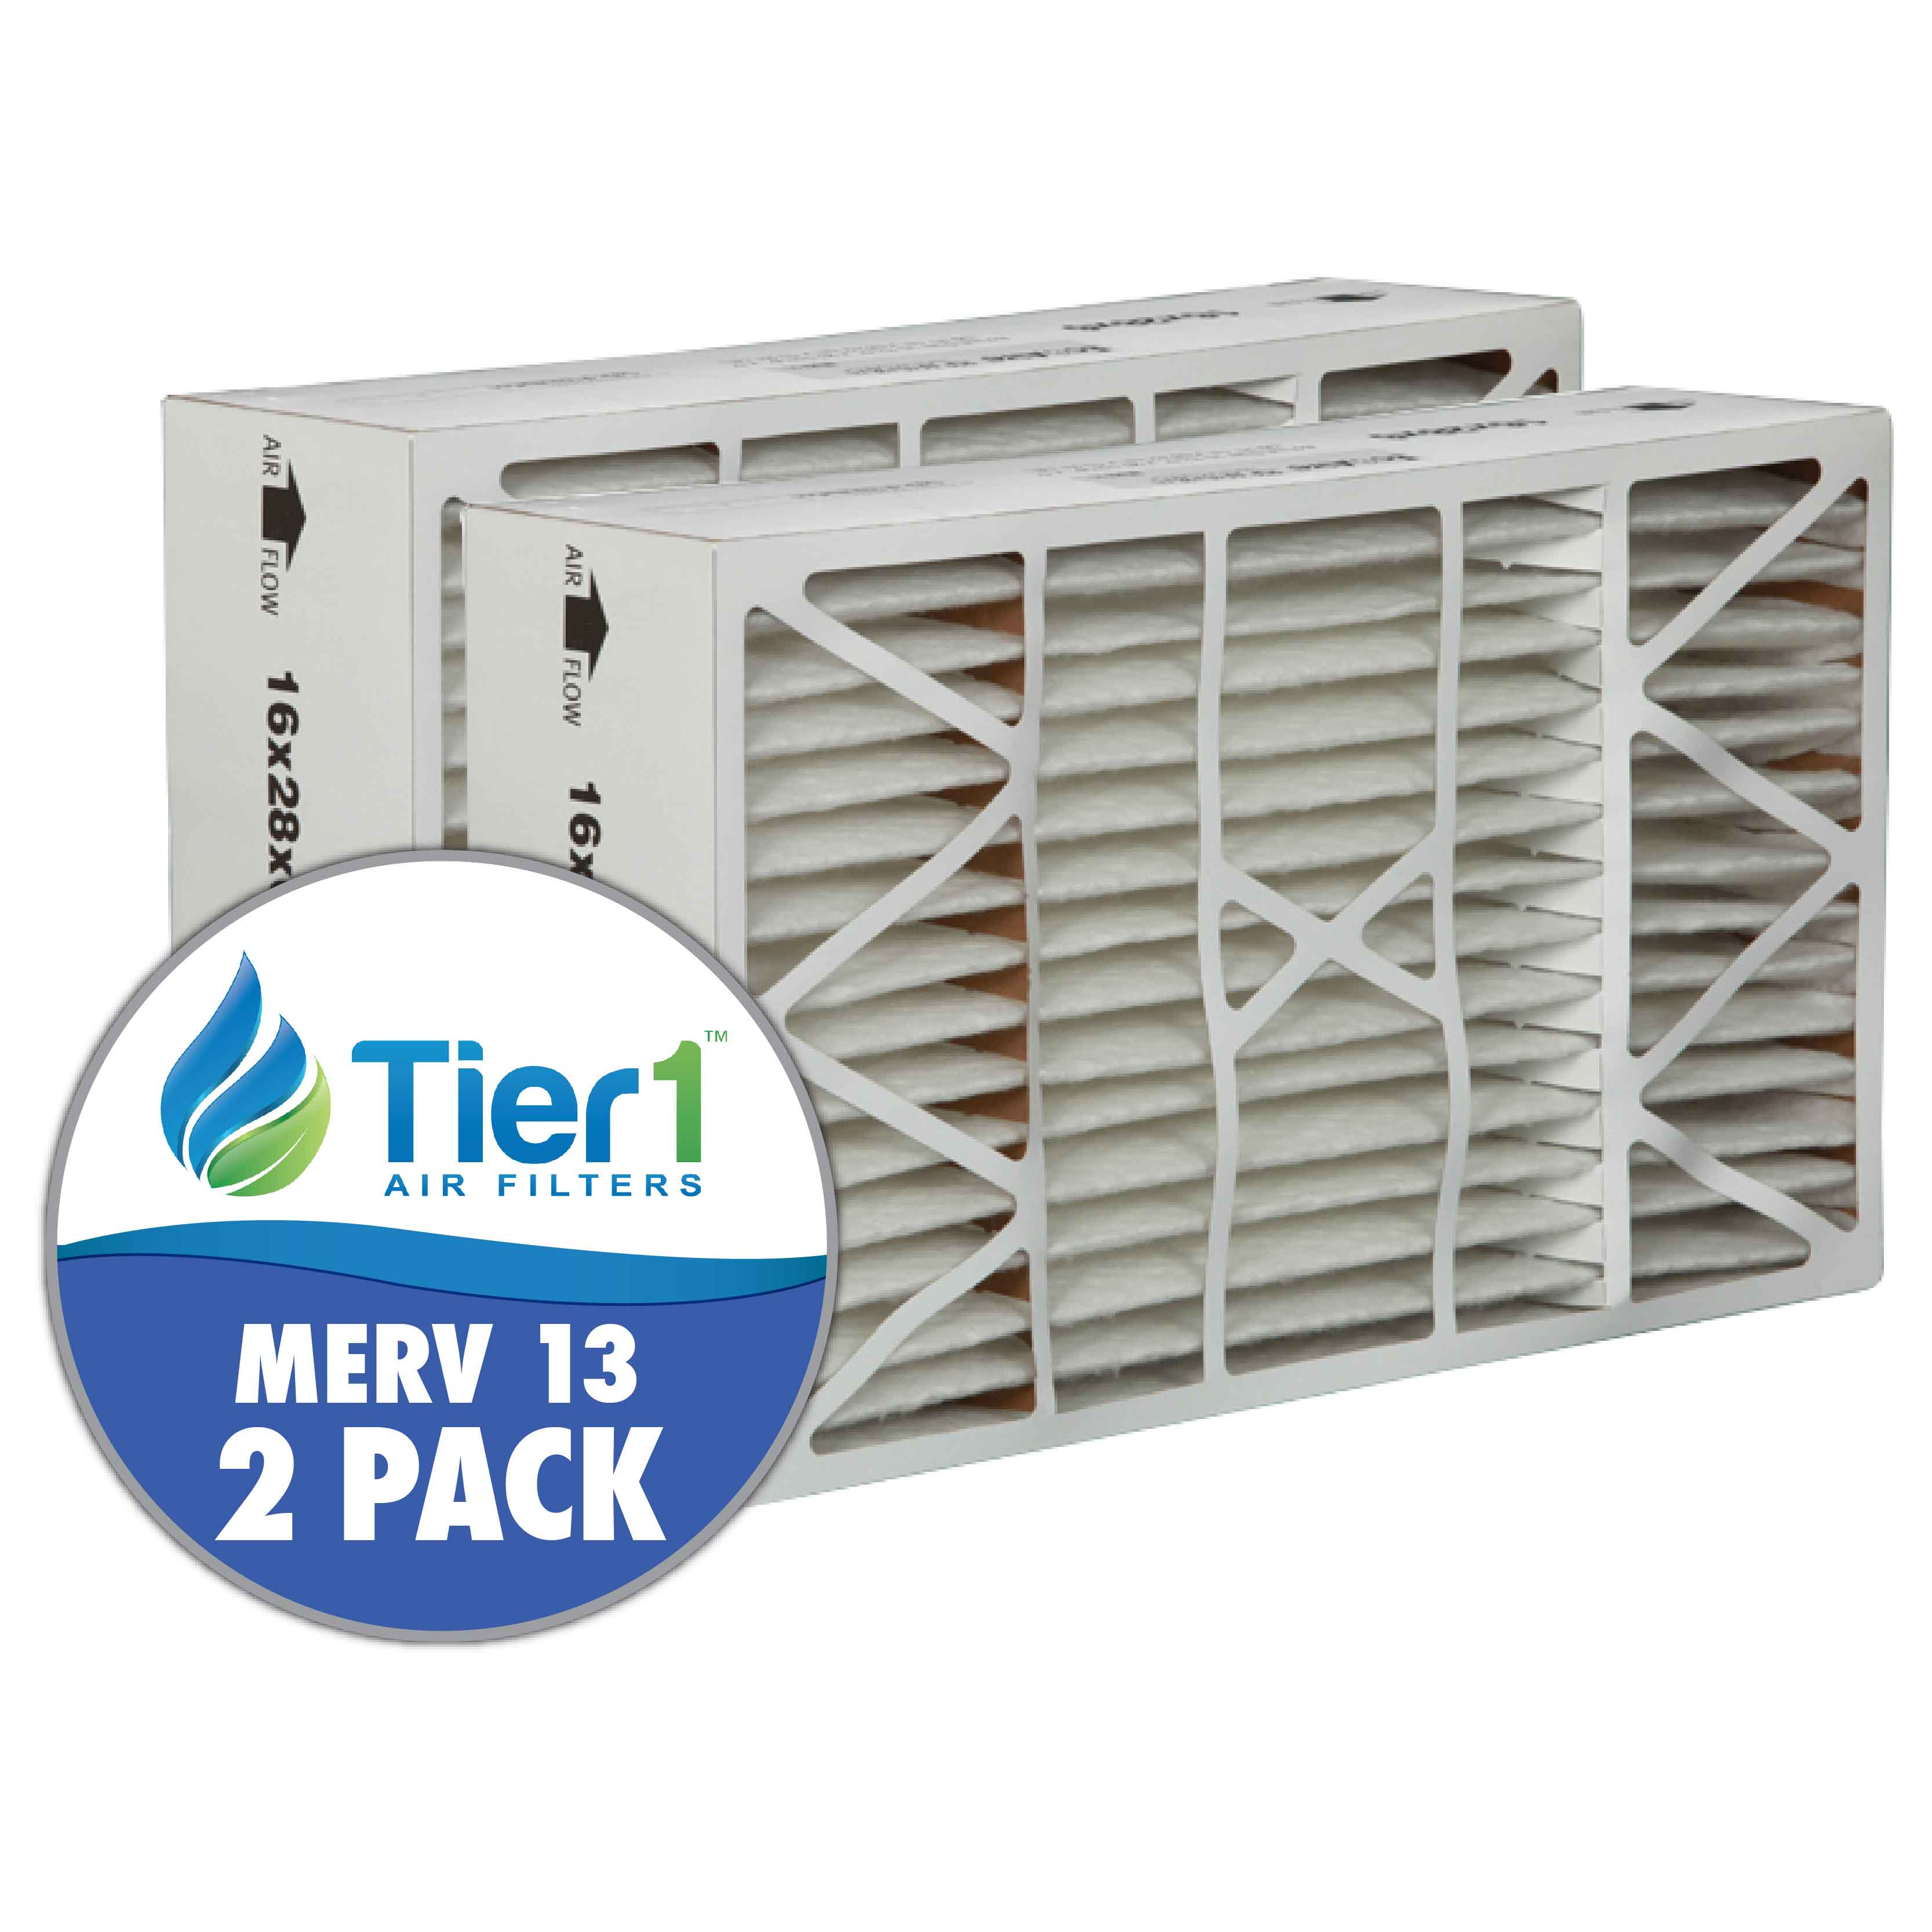 Aprilaire 401 16 x 28 x 6 MERV 13 Comparable Air Filter by Tier1 (2-Pack) TIER1-DPFS16X28X6M13